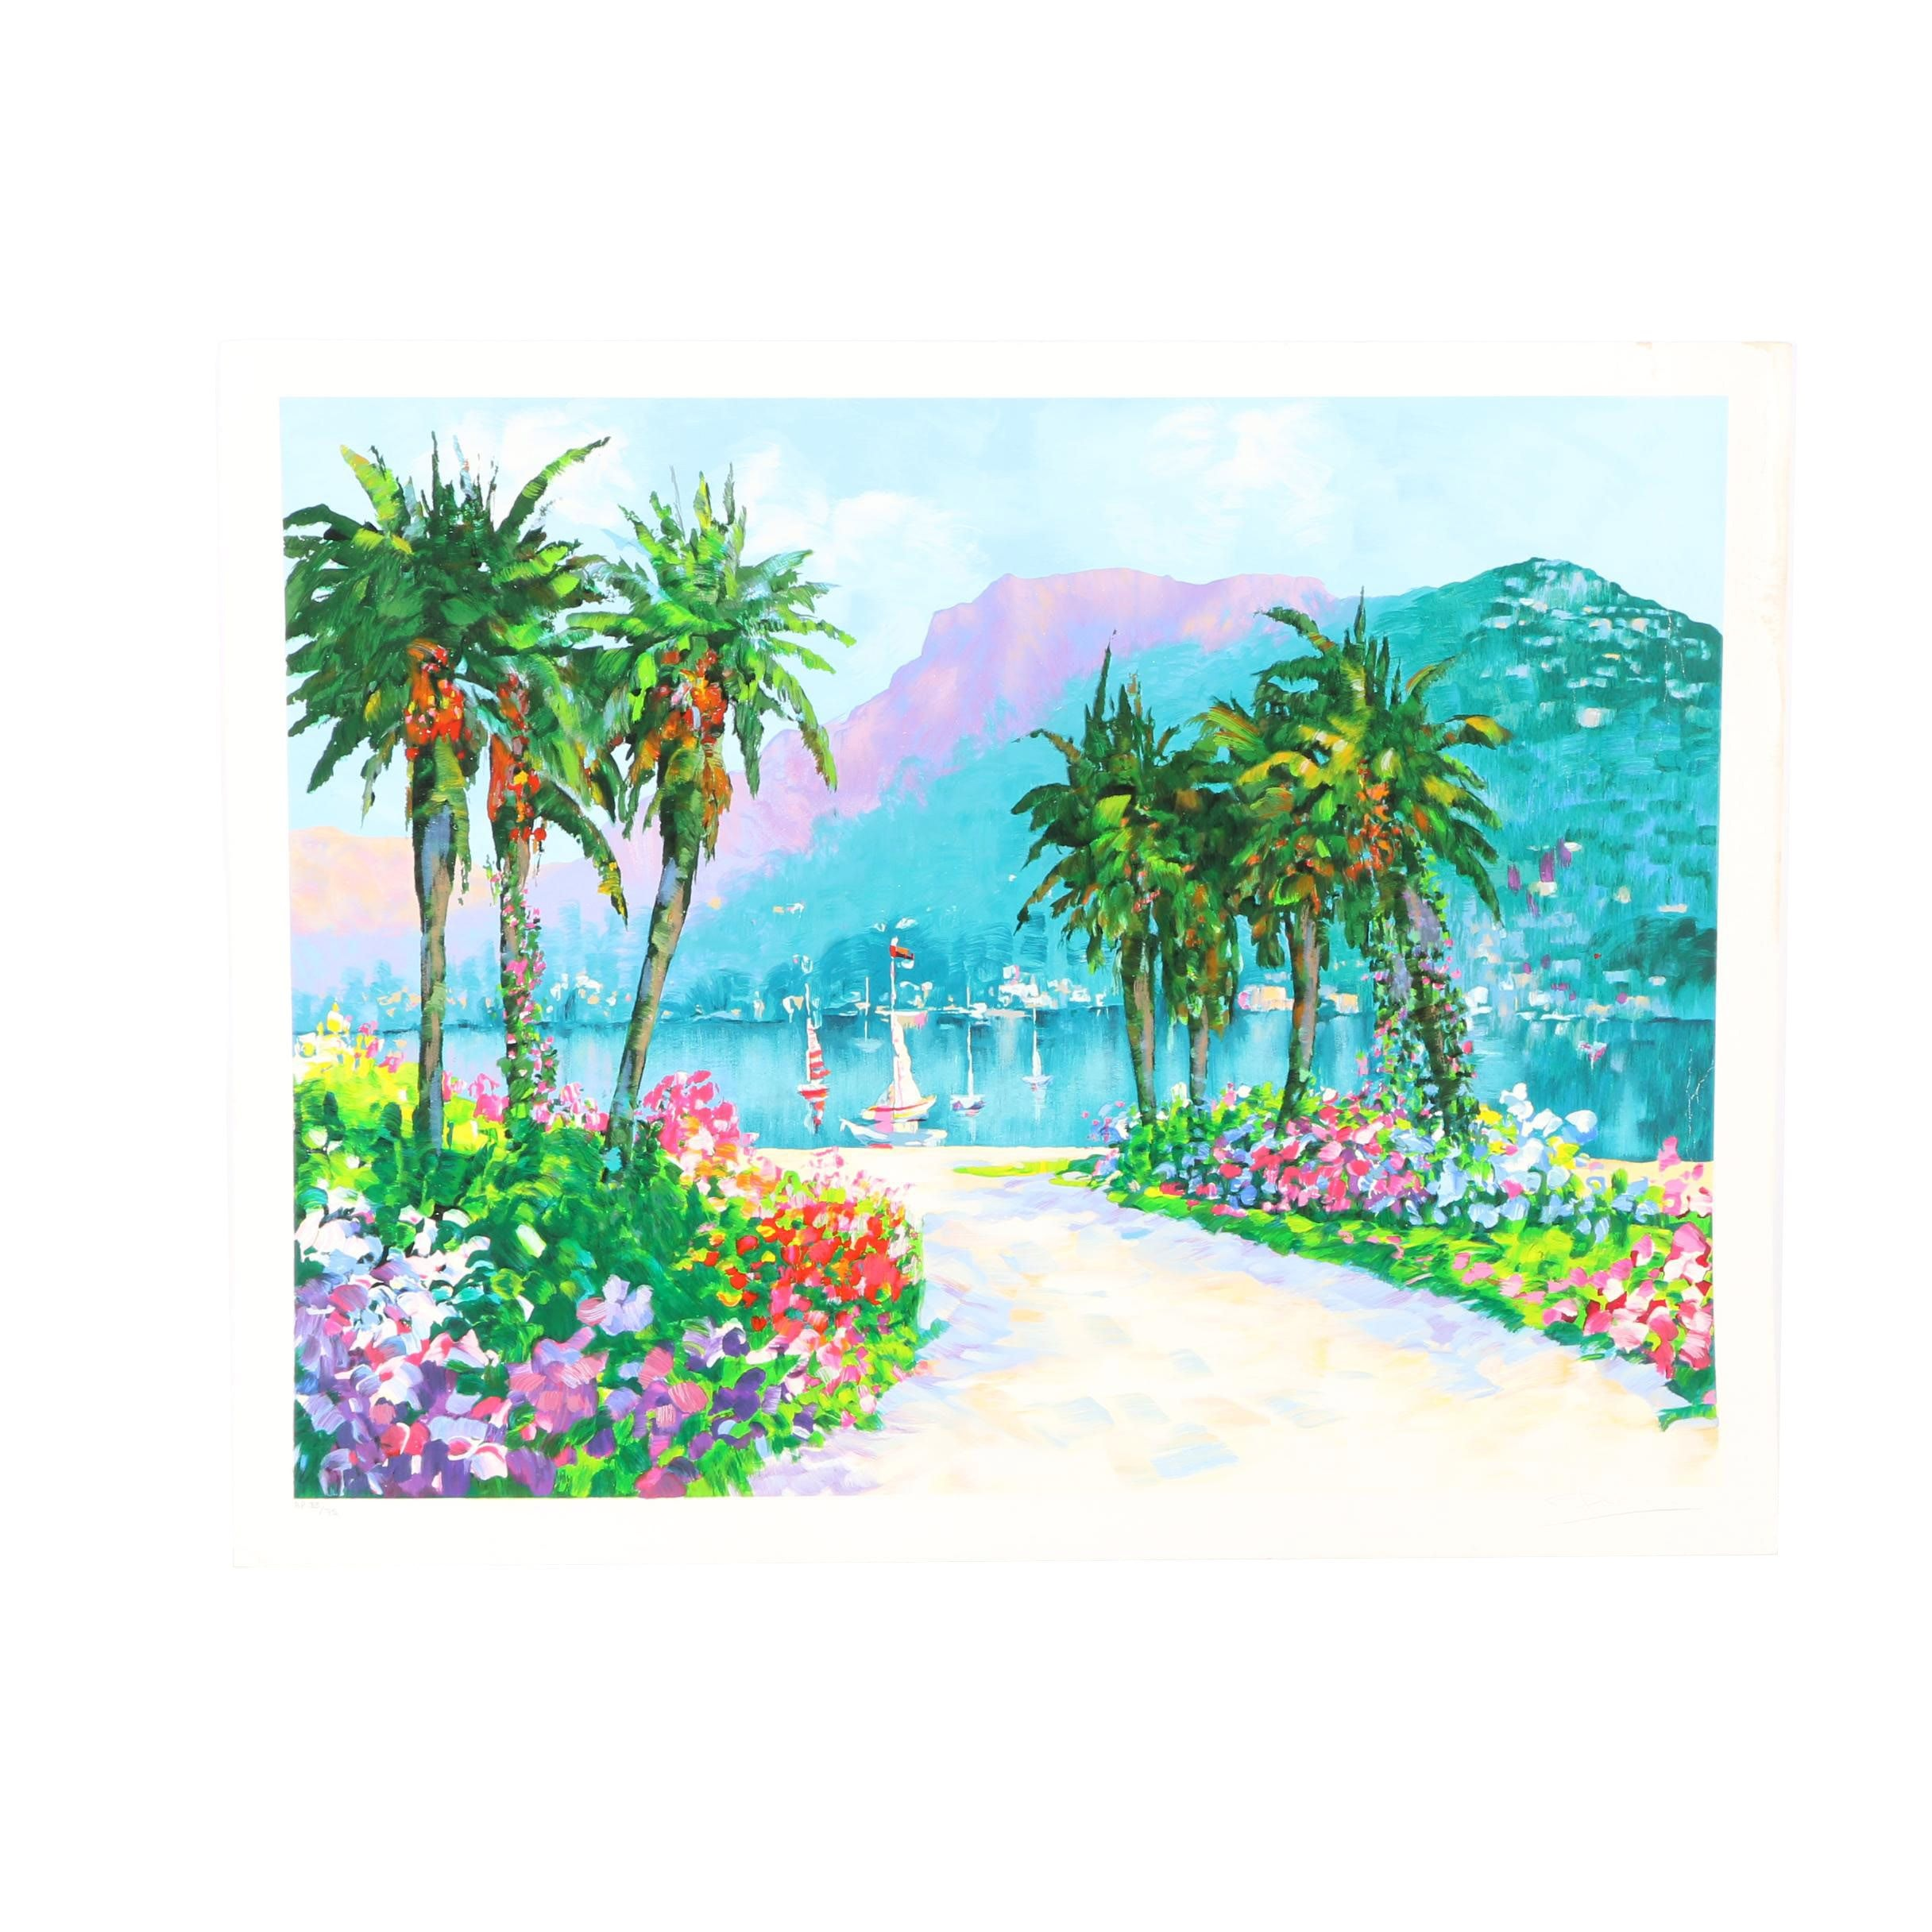 Limited Edition Serigraph of Sailboats